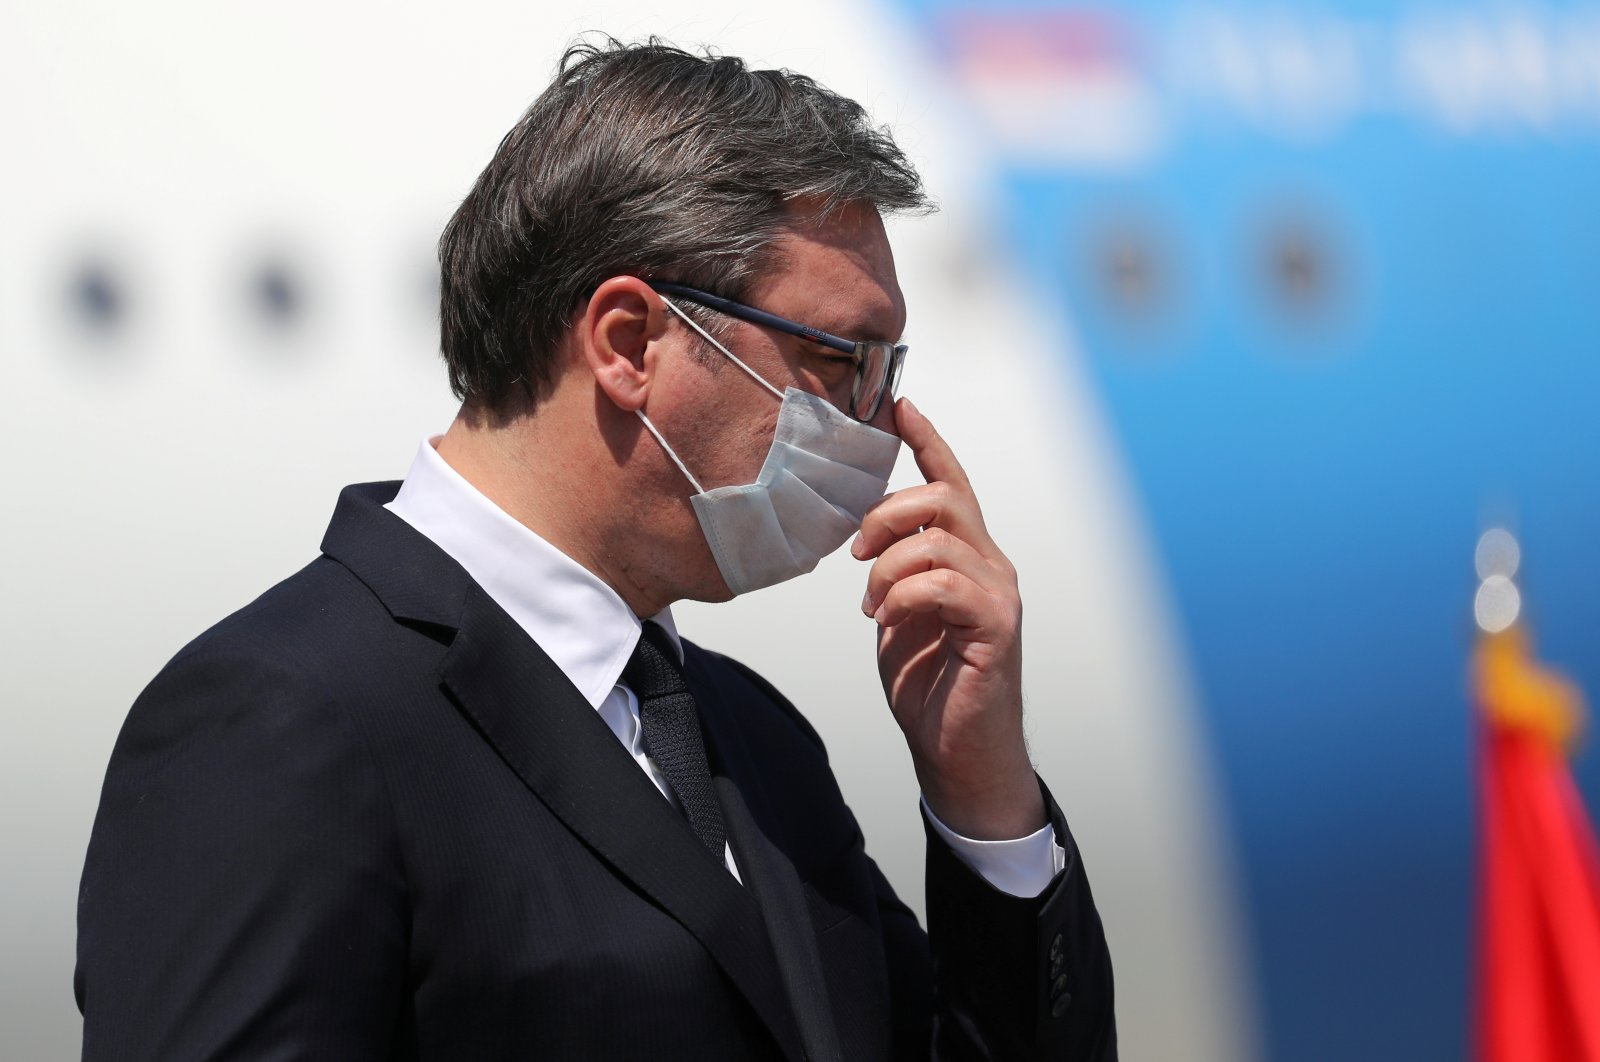 Serbian President Aleksandar Vucic, wearing a protective face mask, gestures after speaking at Nikola Tesla Airport, in Belgrade, Serbia, April 25, 2020. (Reuters Photo)